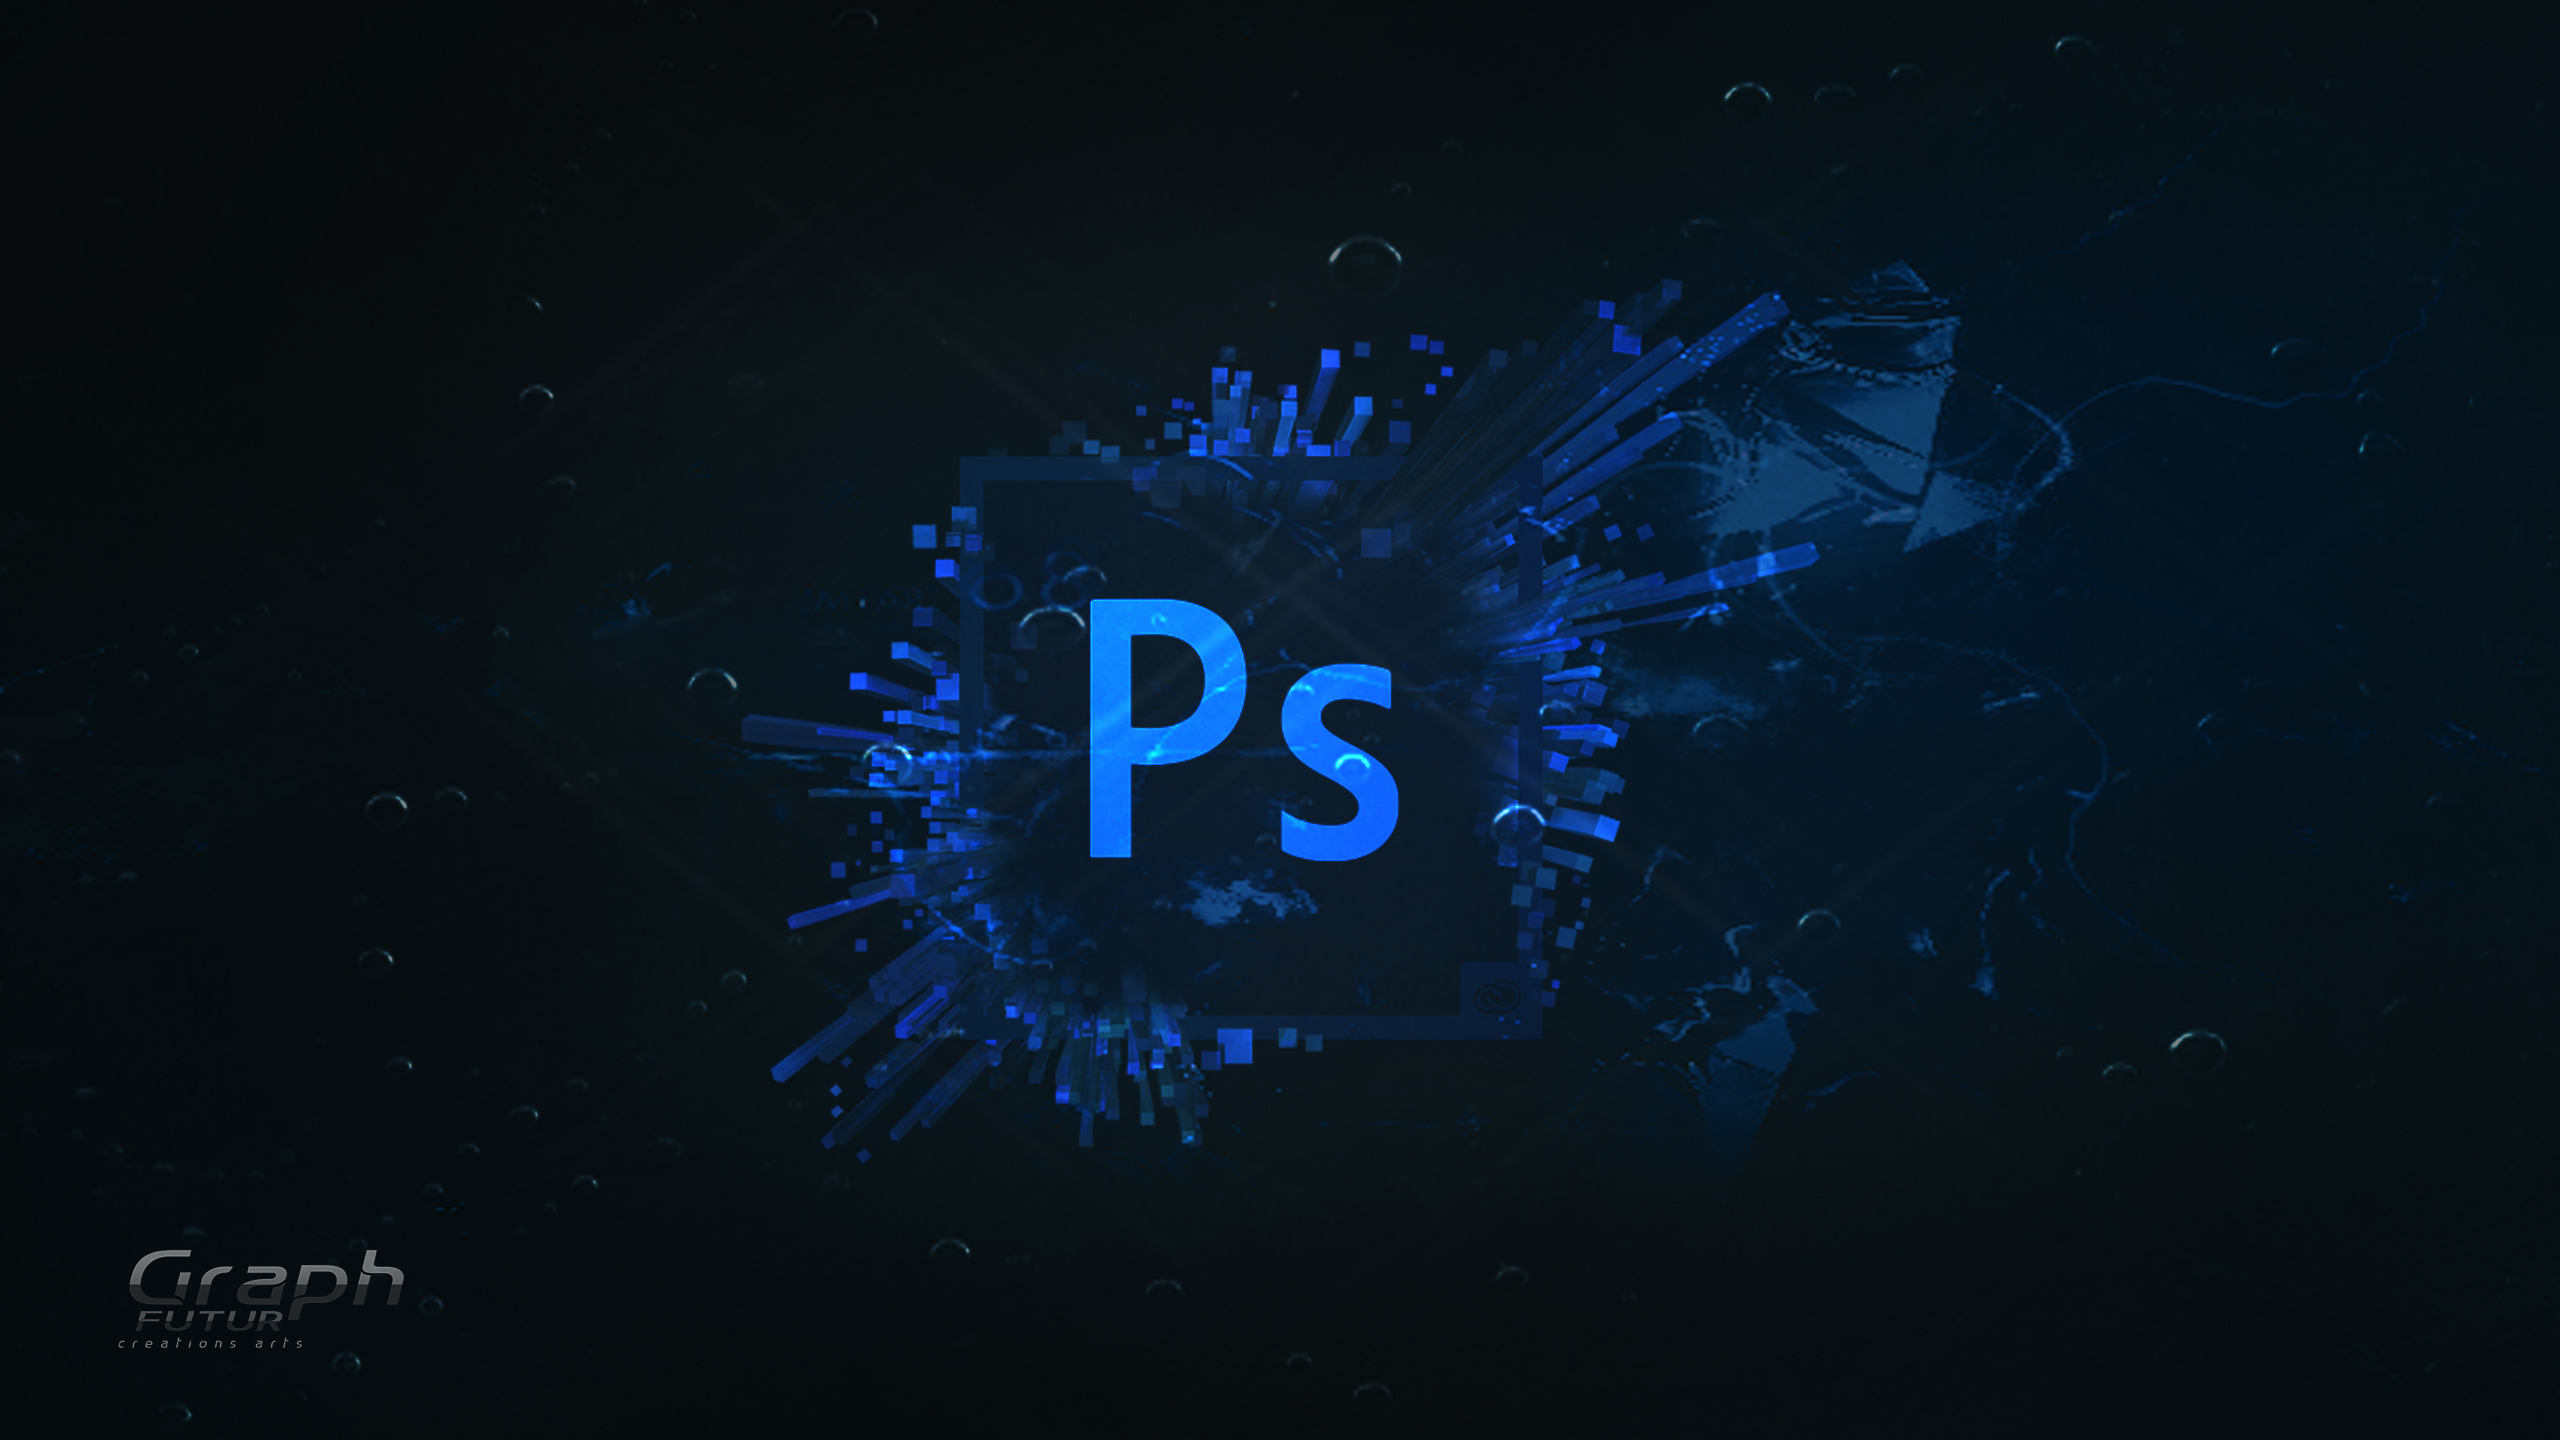 photoshop wallpaper images pictures - photo #13